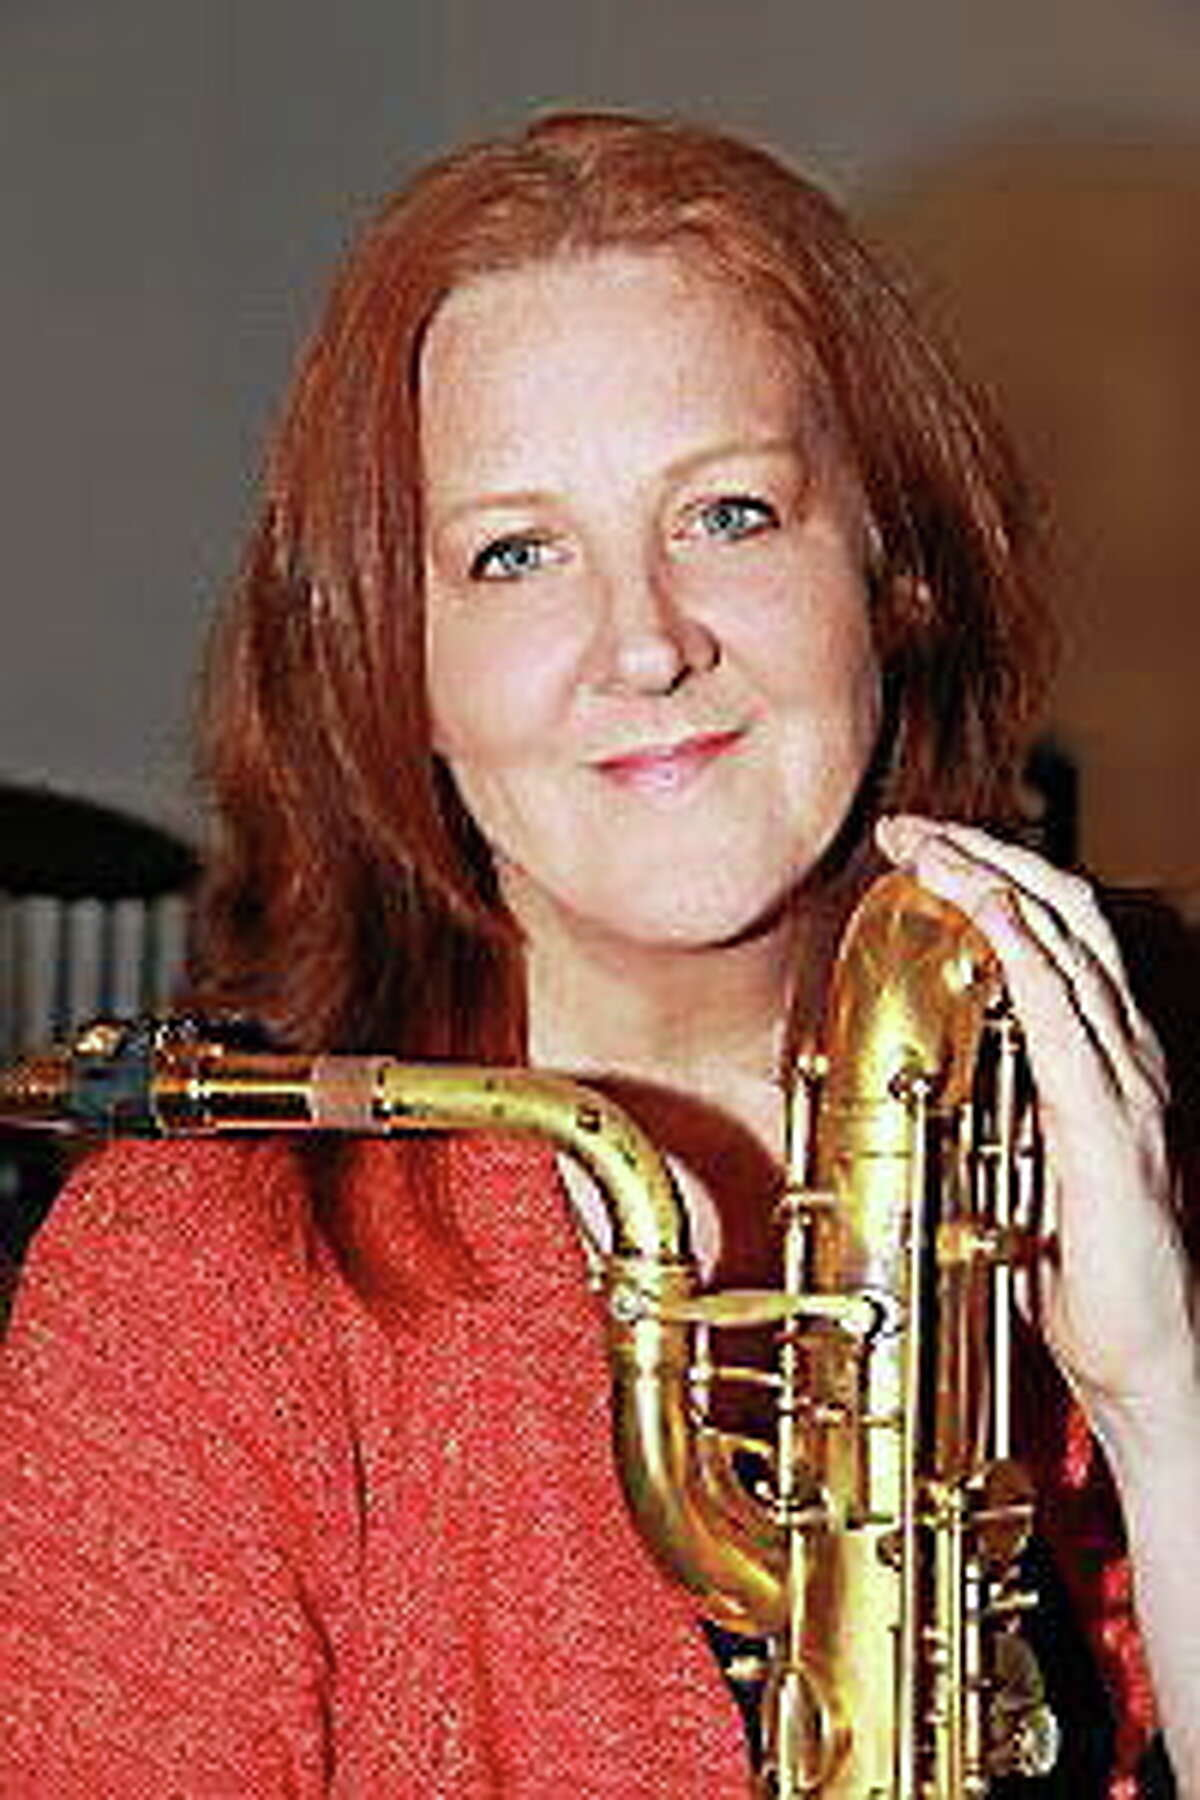 Claire Daly is taking part of the 9th annual Jazz Composers and Improvisors Festival on Saturday, March 8 in Middletown.